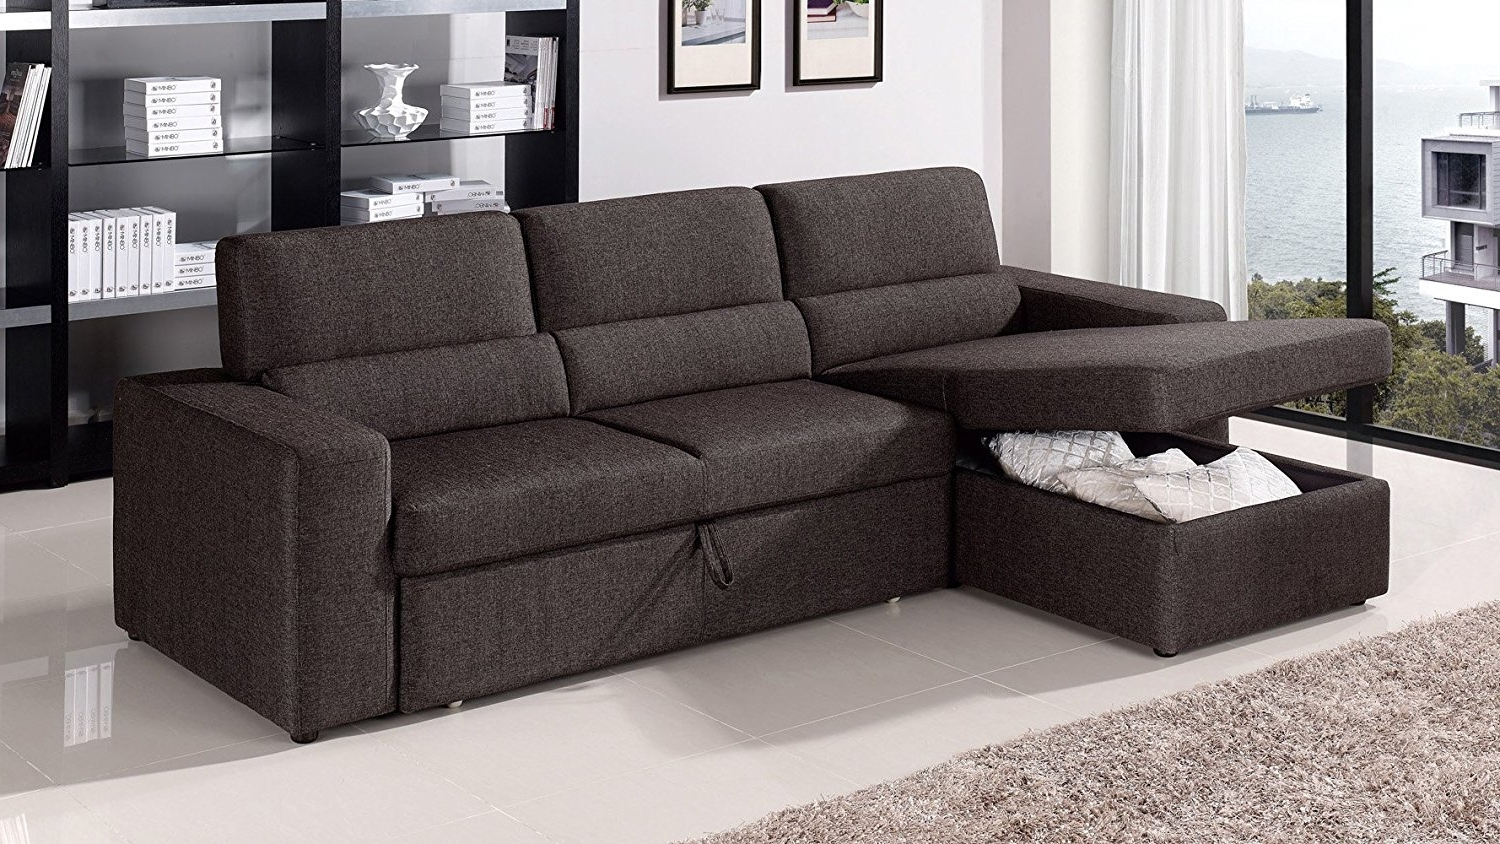 Chaise Sleeper Sofas With Regard To Trendy Amazon: Black/brown Clubber Sleeper Sectional Sofa – Left (View 6 of 15)